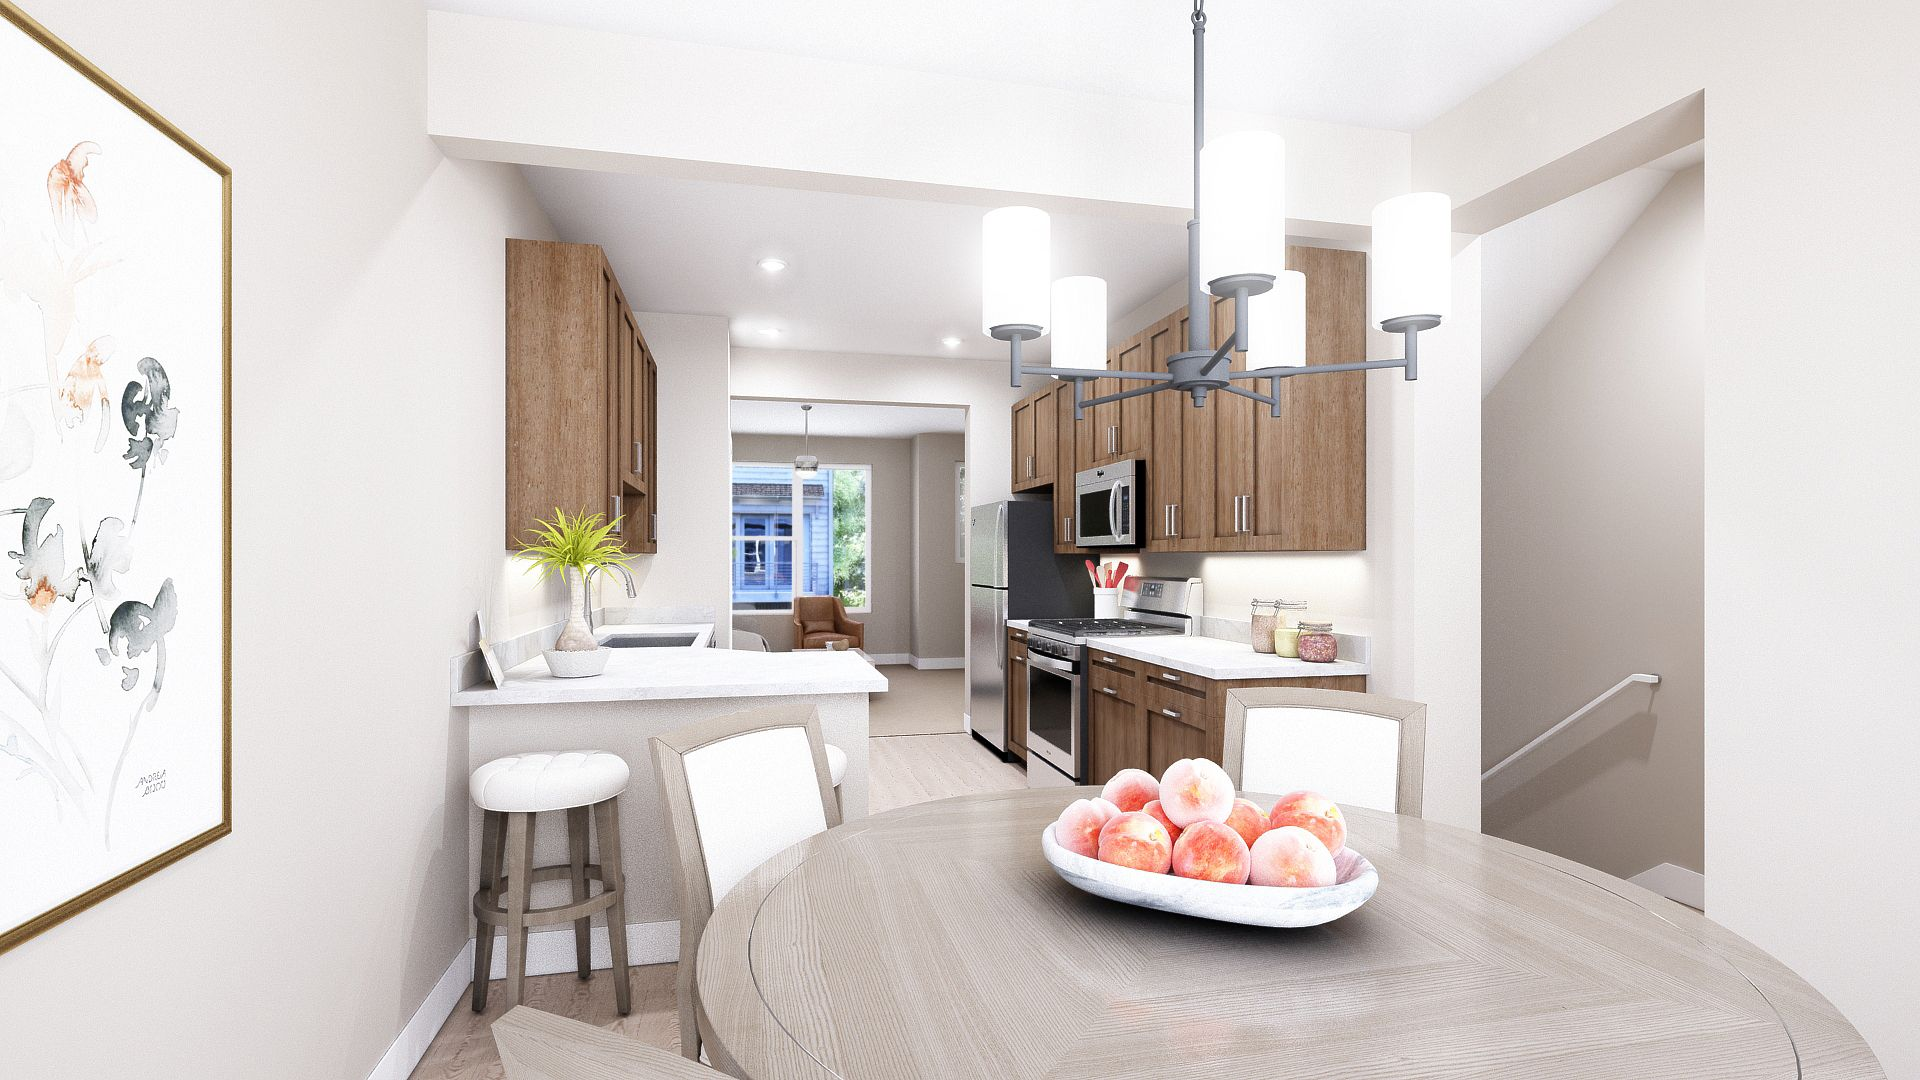 Kitchen featured in the A Plan By Koelbel Urban Homes in Denver, CO